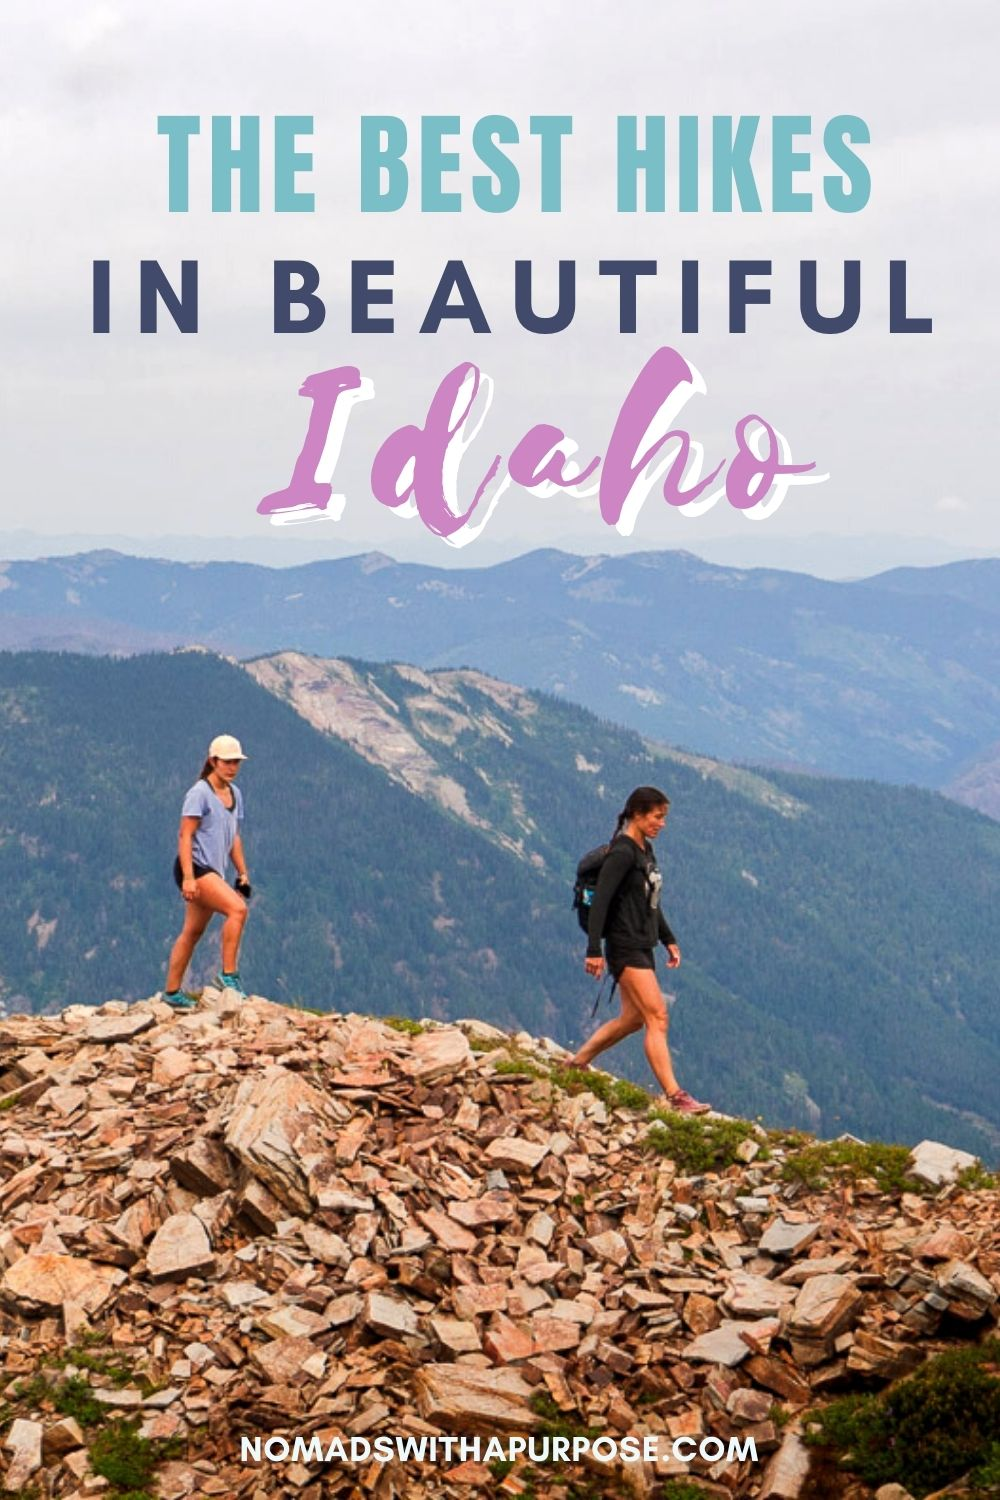 Best Hikes in Beautiful Idaho